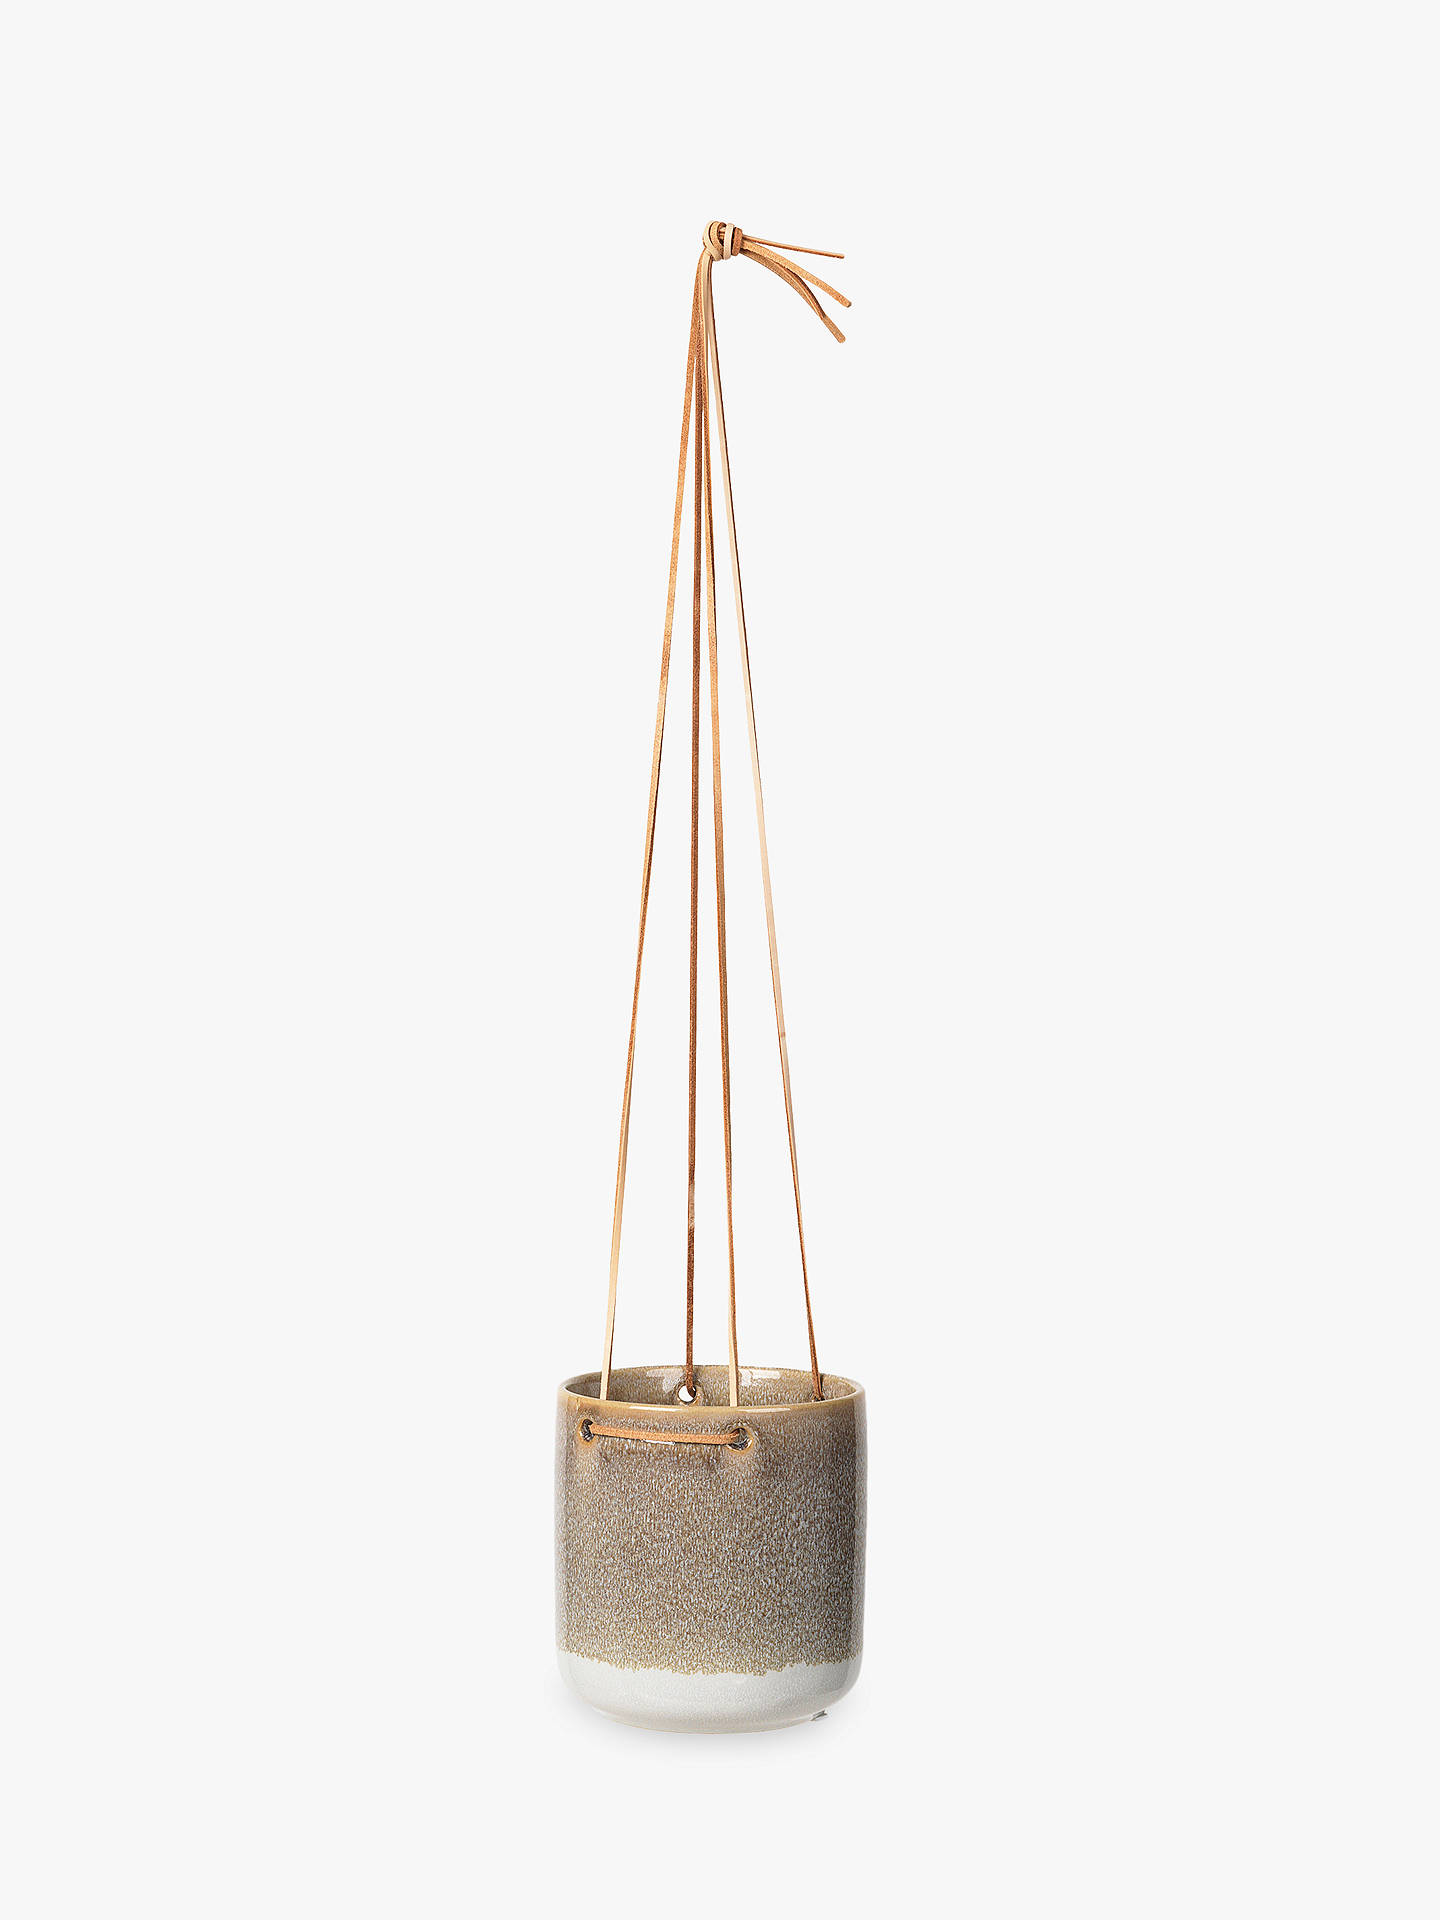 BuyBroste Copenhagen Almas Medium Hanging Pot, Taupe Online at johnlewis.com